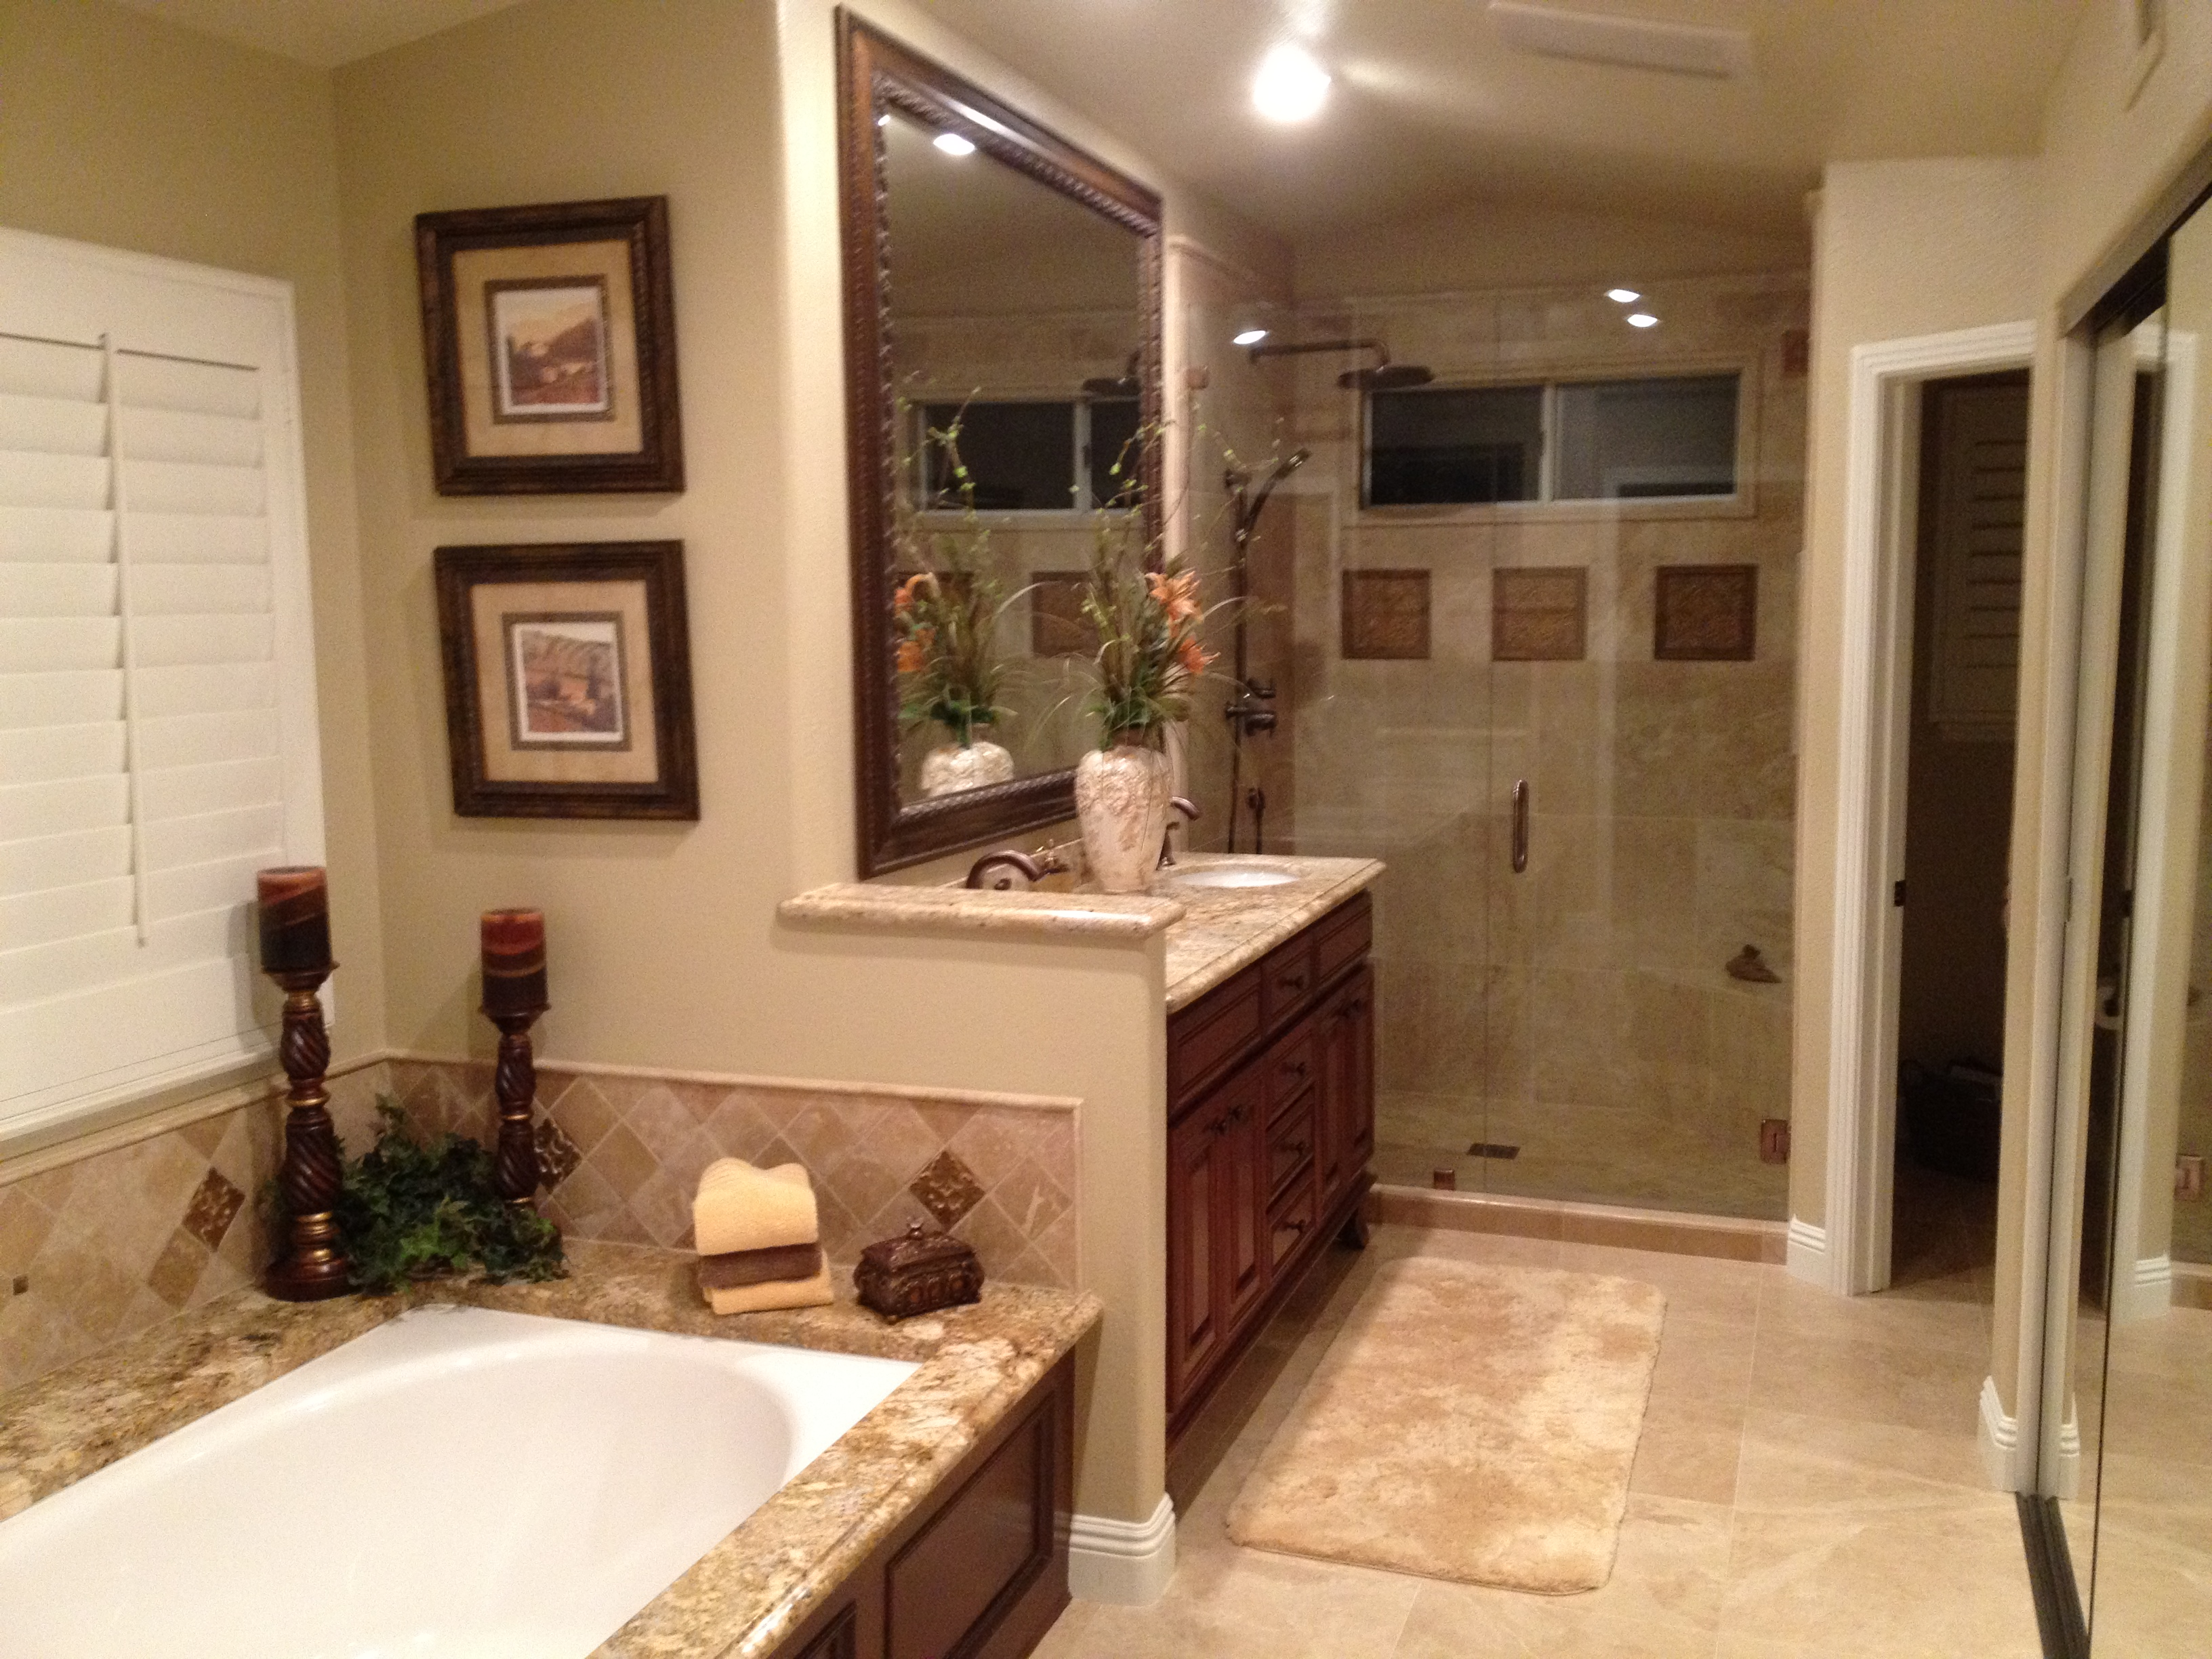 Orange county bathroom remodeling kitchen remodeling - How to layout a bathroom remodel ...